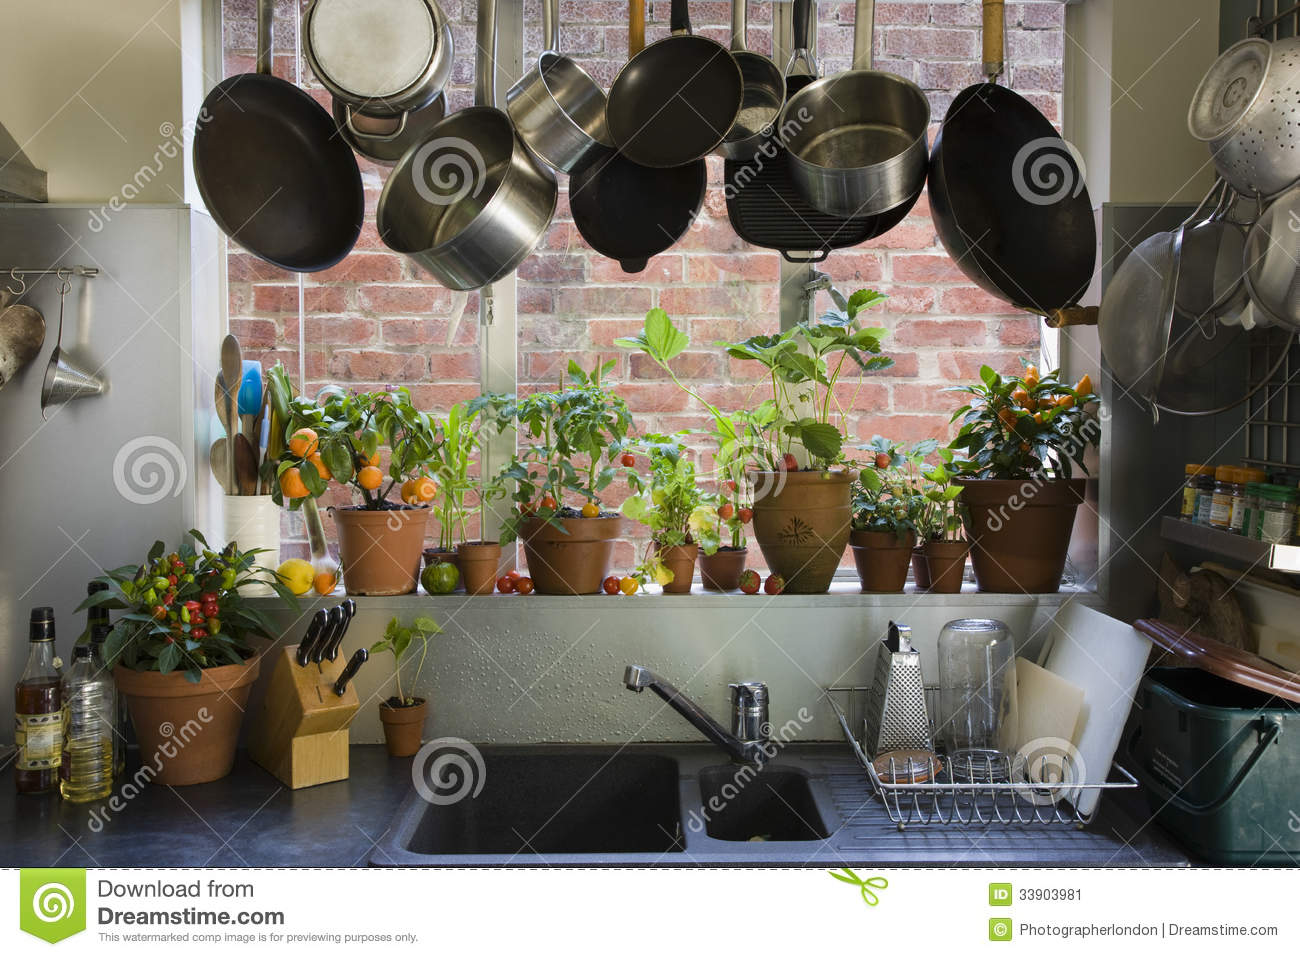 kitchen utensil rack mexican table view of domestic stock image. image ...